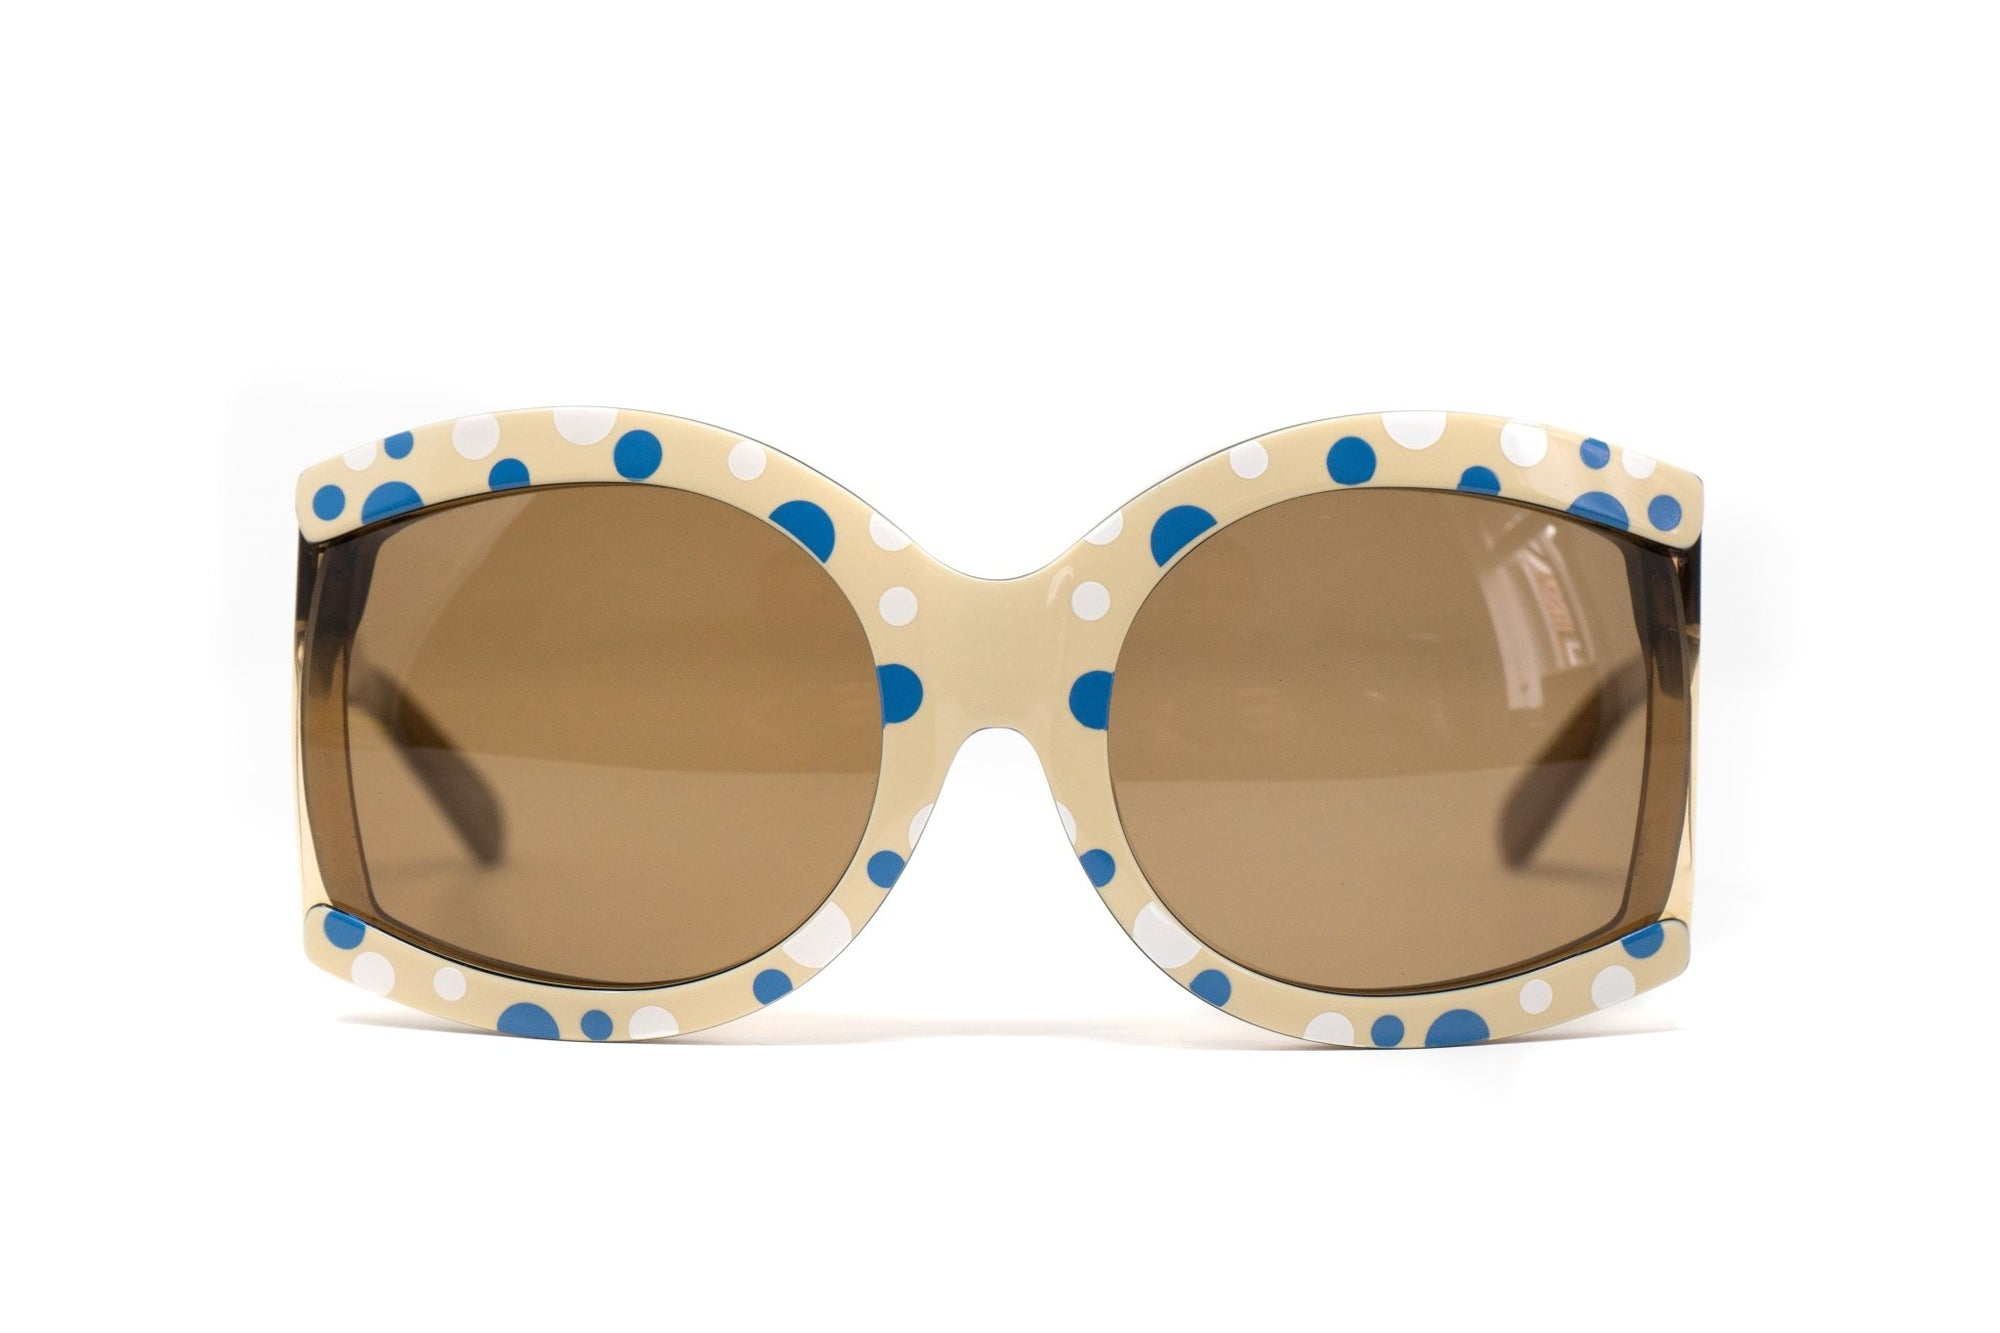 Eley Kishimoto Sunglasses Oversized Cream Spots With Brown Category 2 Lenses 6EK11C1SPOTS - Watches & Crystals